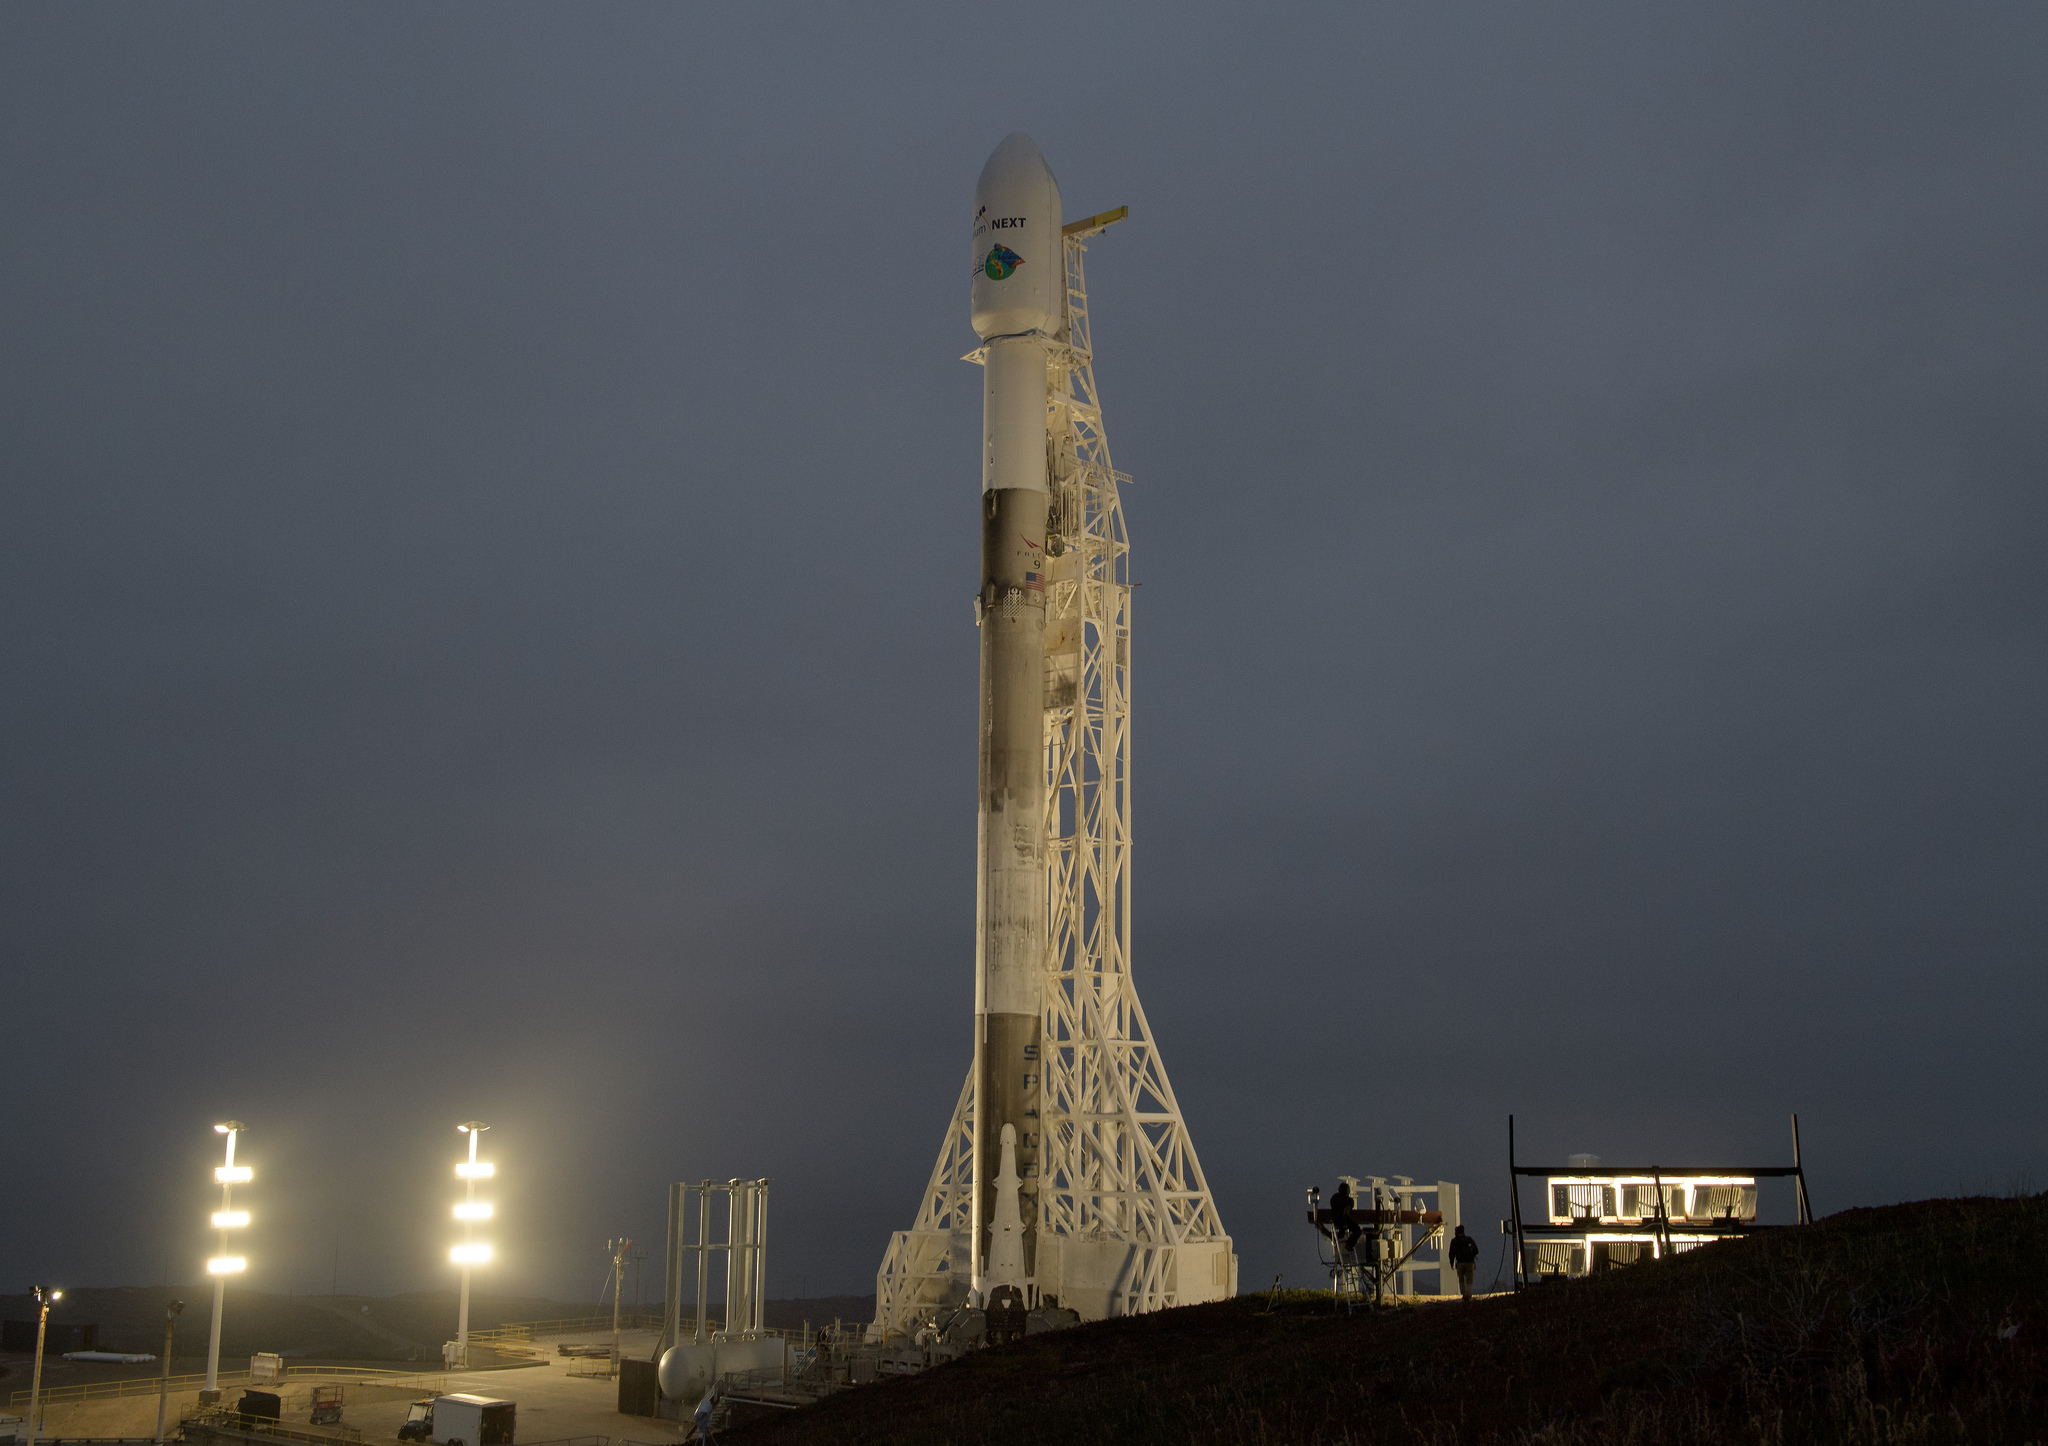 GRACE-FO sits in the fairing of the SpaceX Falcon 9 rocket.